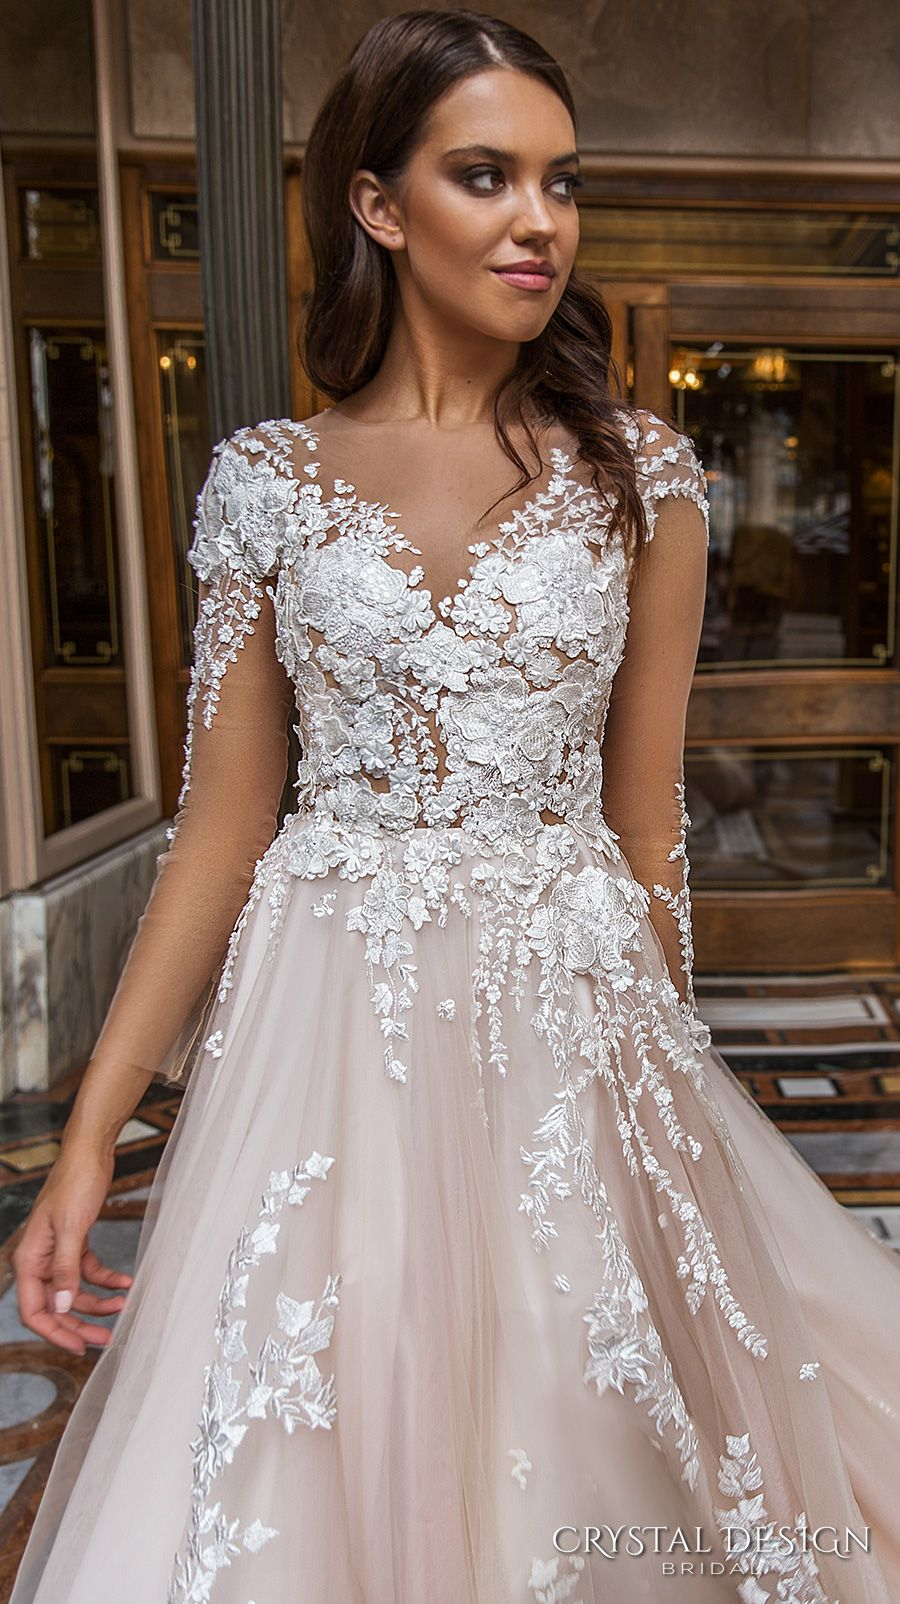 72fb611c972e crystal design 2017 bridal long sleeves v neck heavily embellished lace  embroidered romantic princess blush color